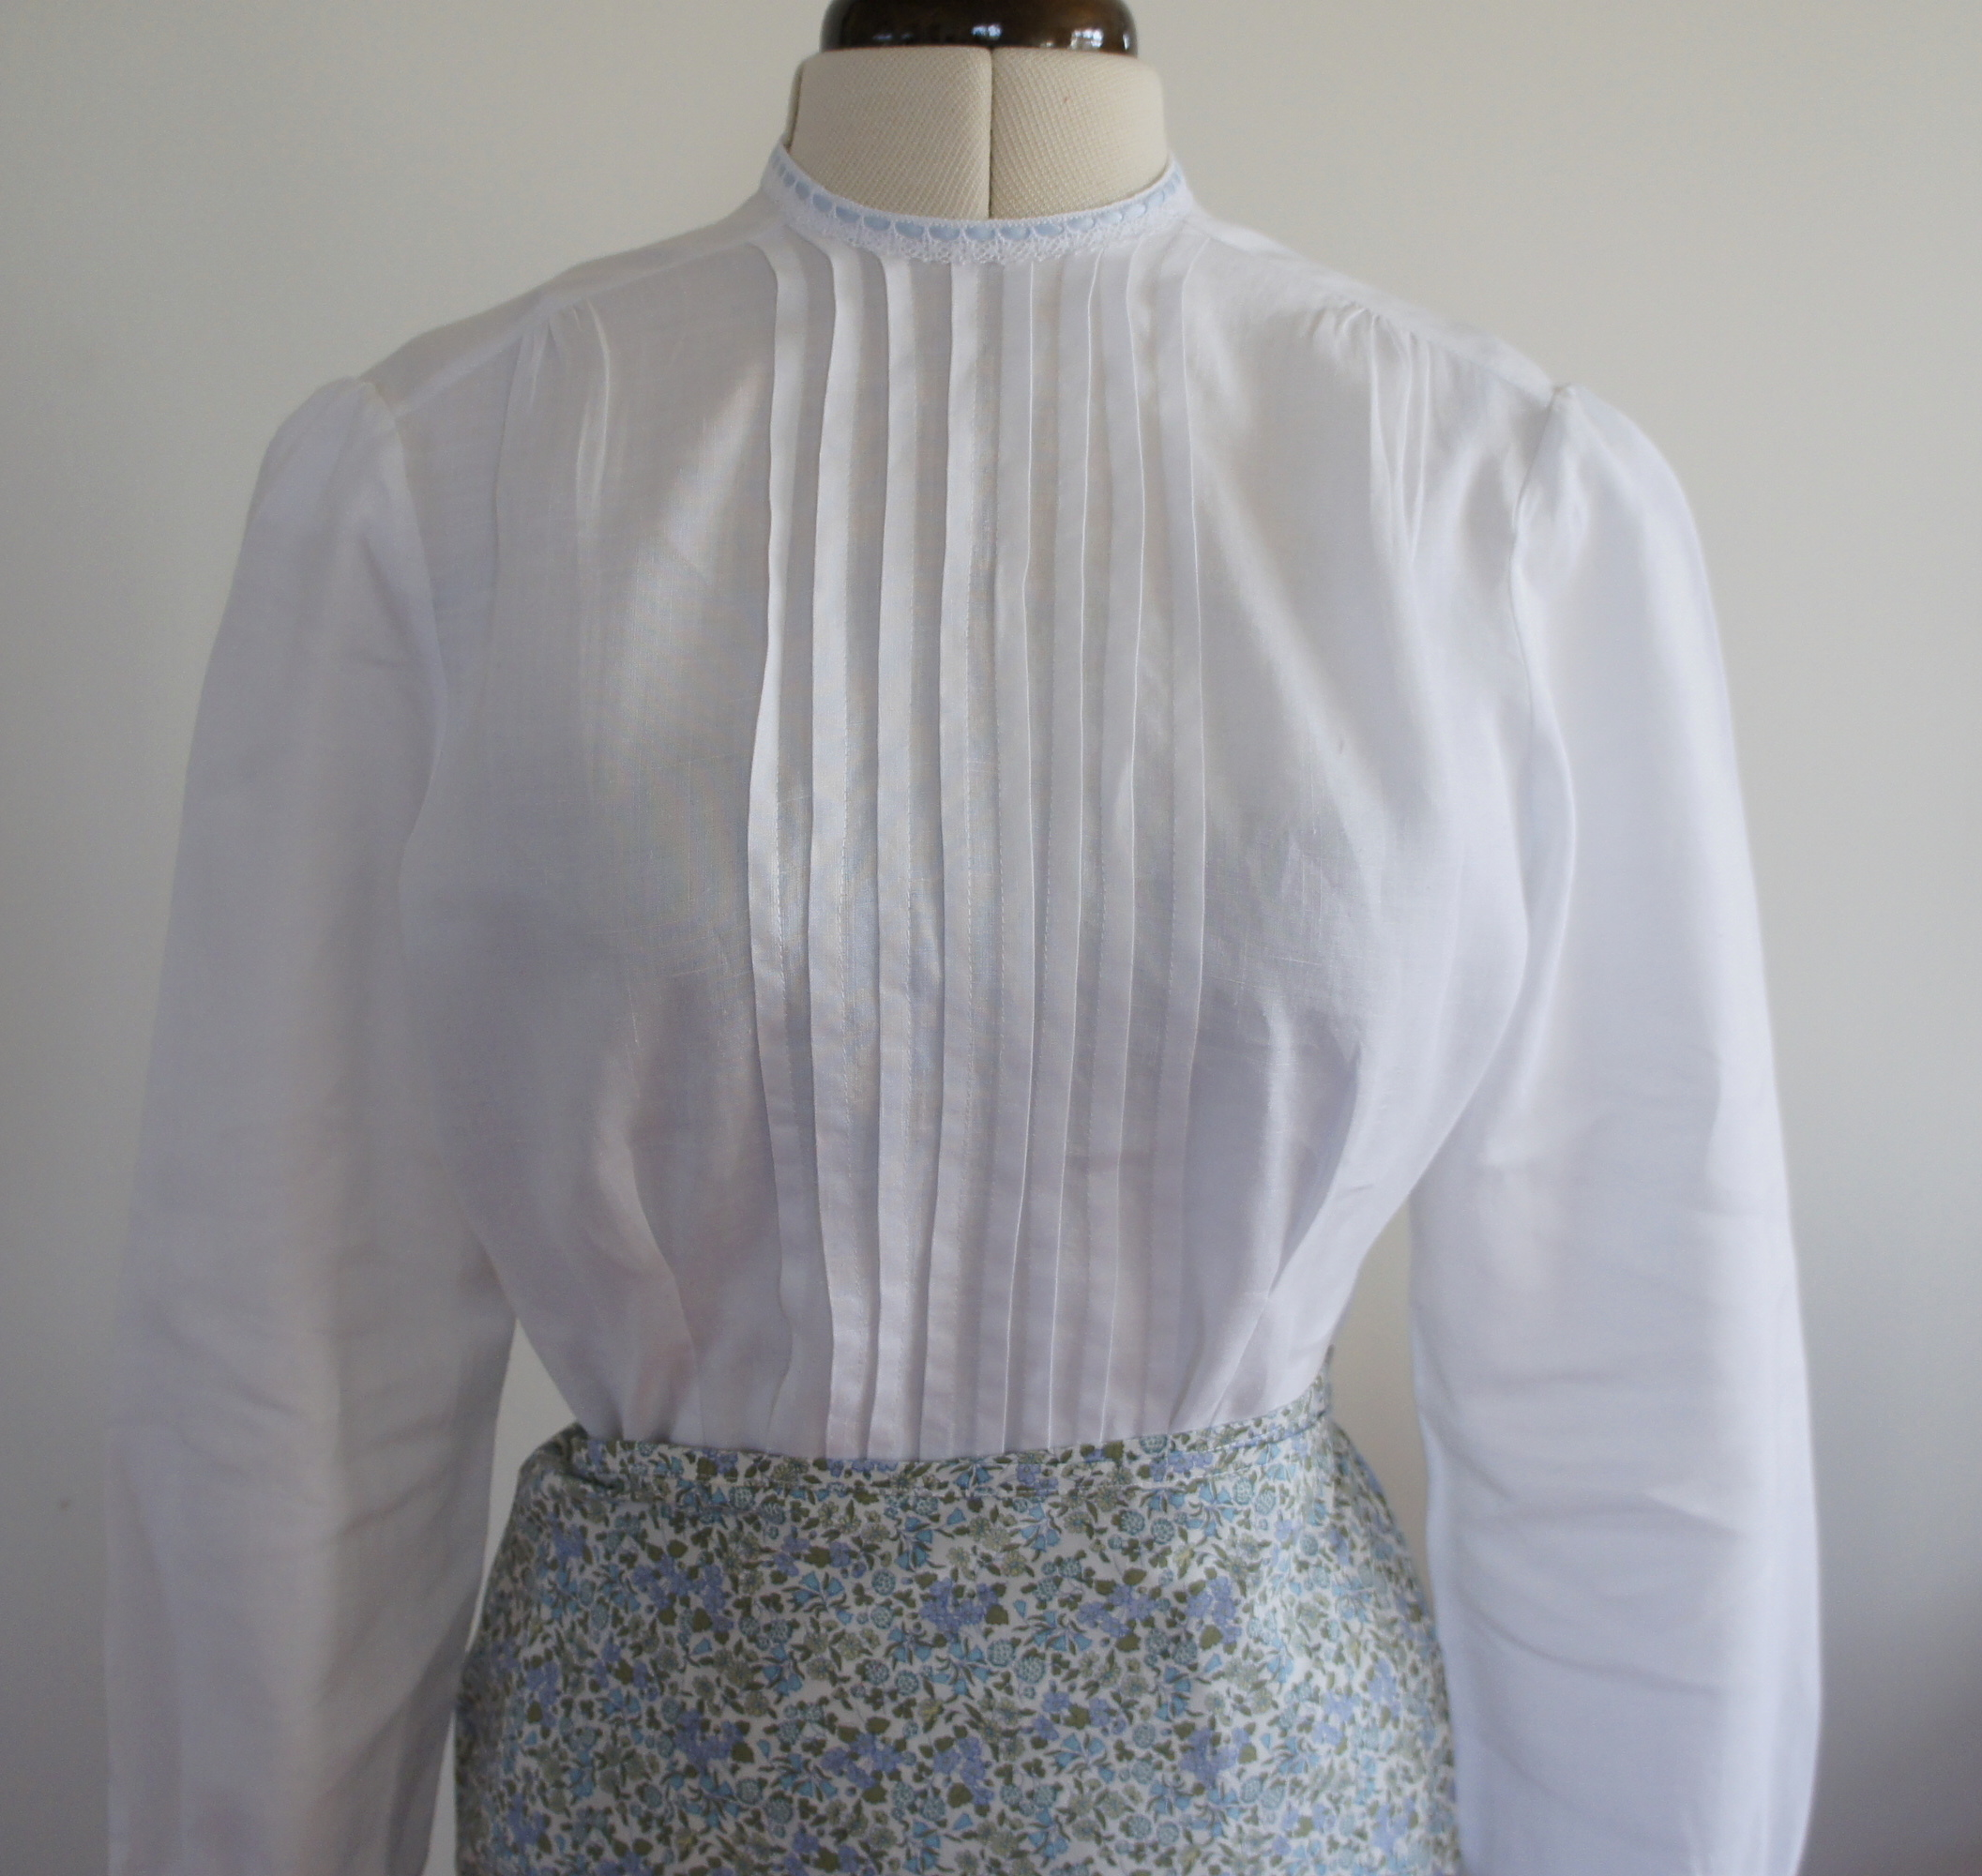 Vintage pin tuck blouse revisited tulle and tweed back when i was undertaking my blouse athon i featured a vintage pattern blouse i made for my daughter vintage pin tuck blouse and mentioned that i would jeuxipadfo Image collections